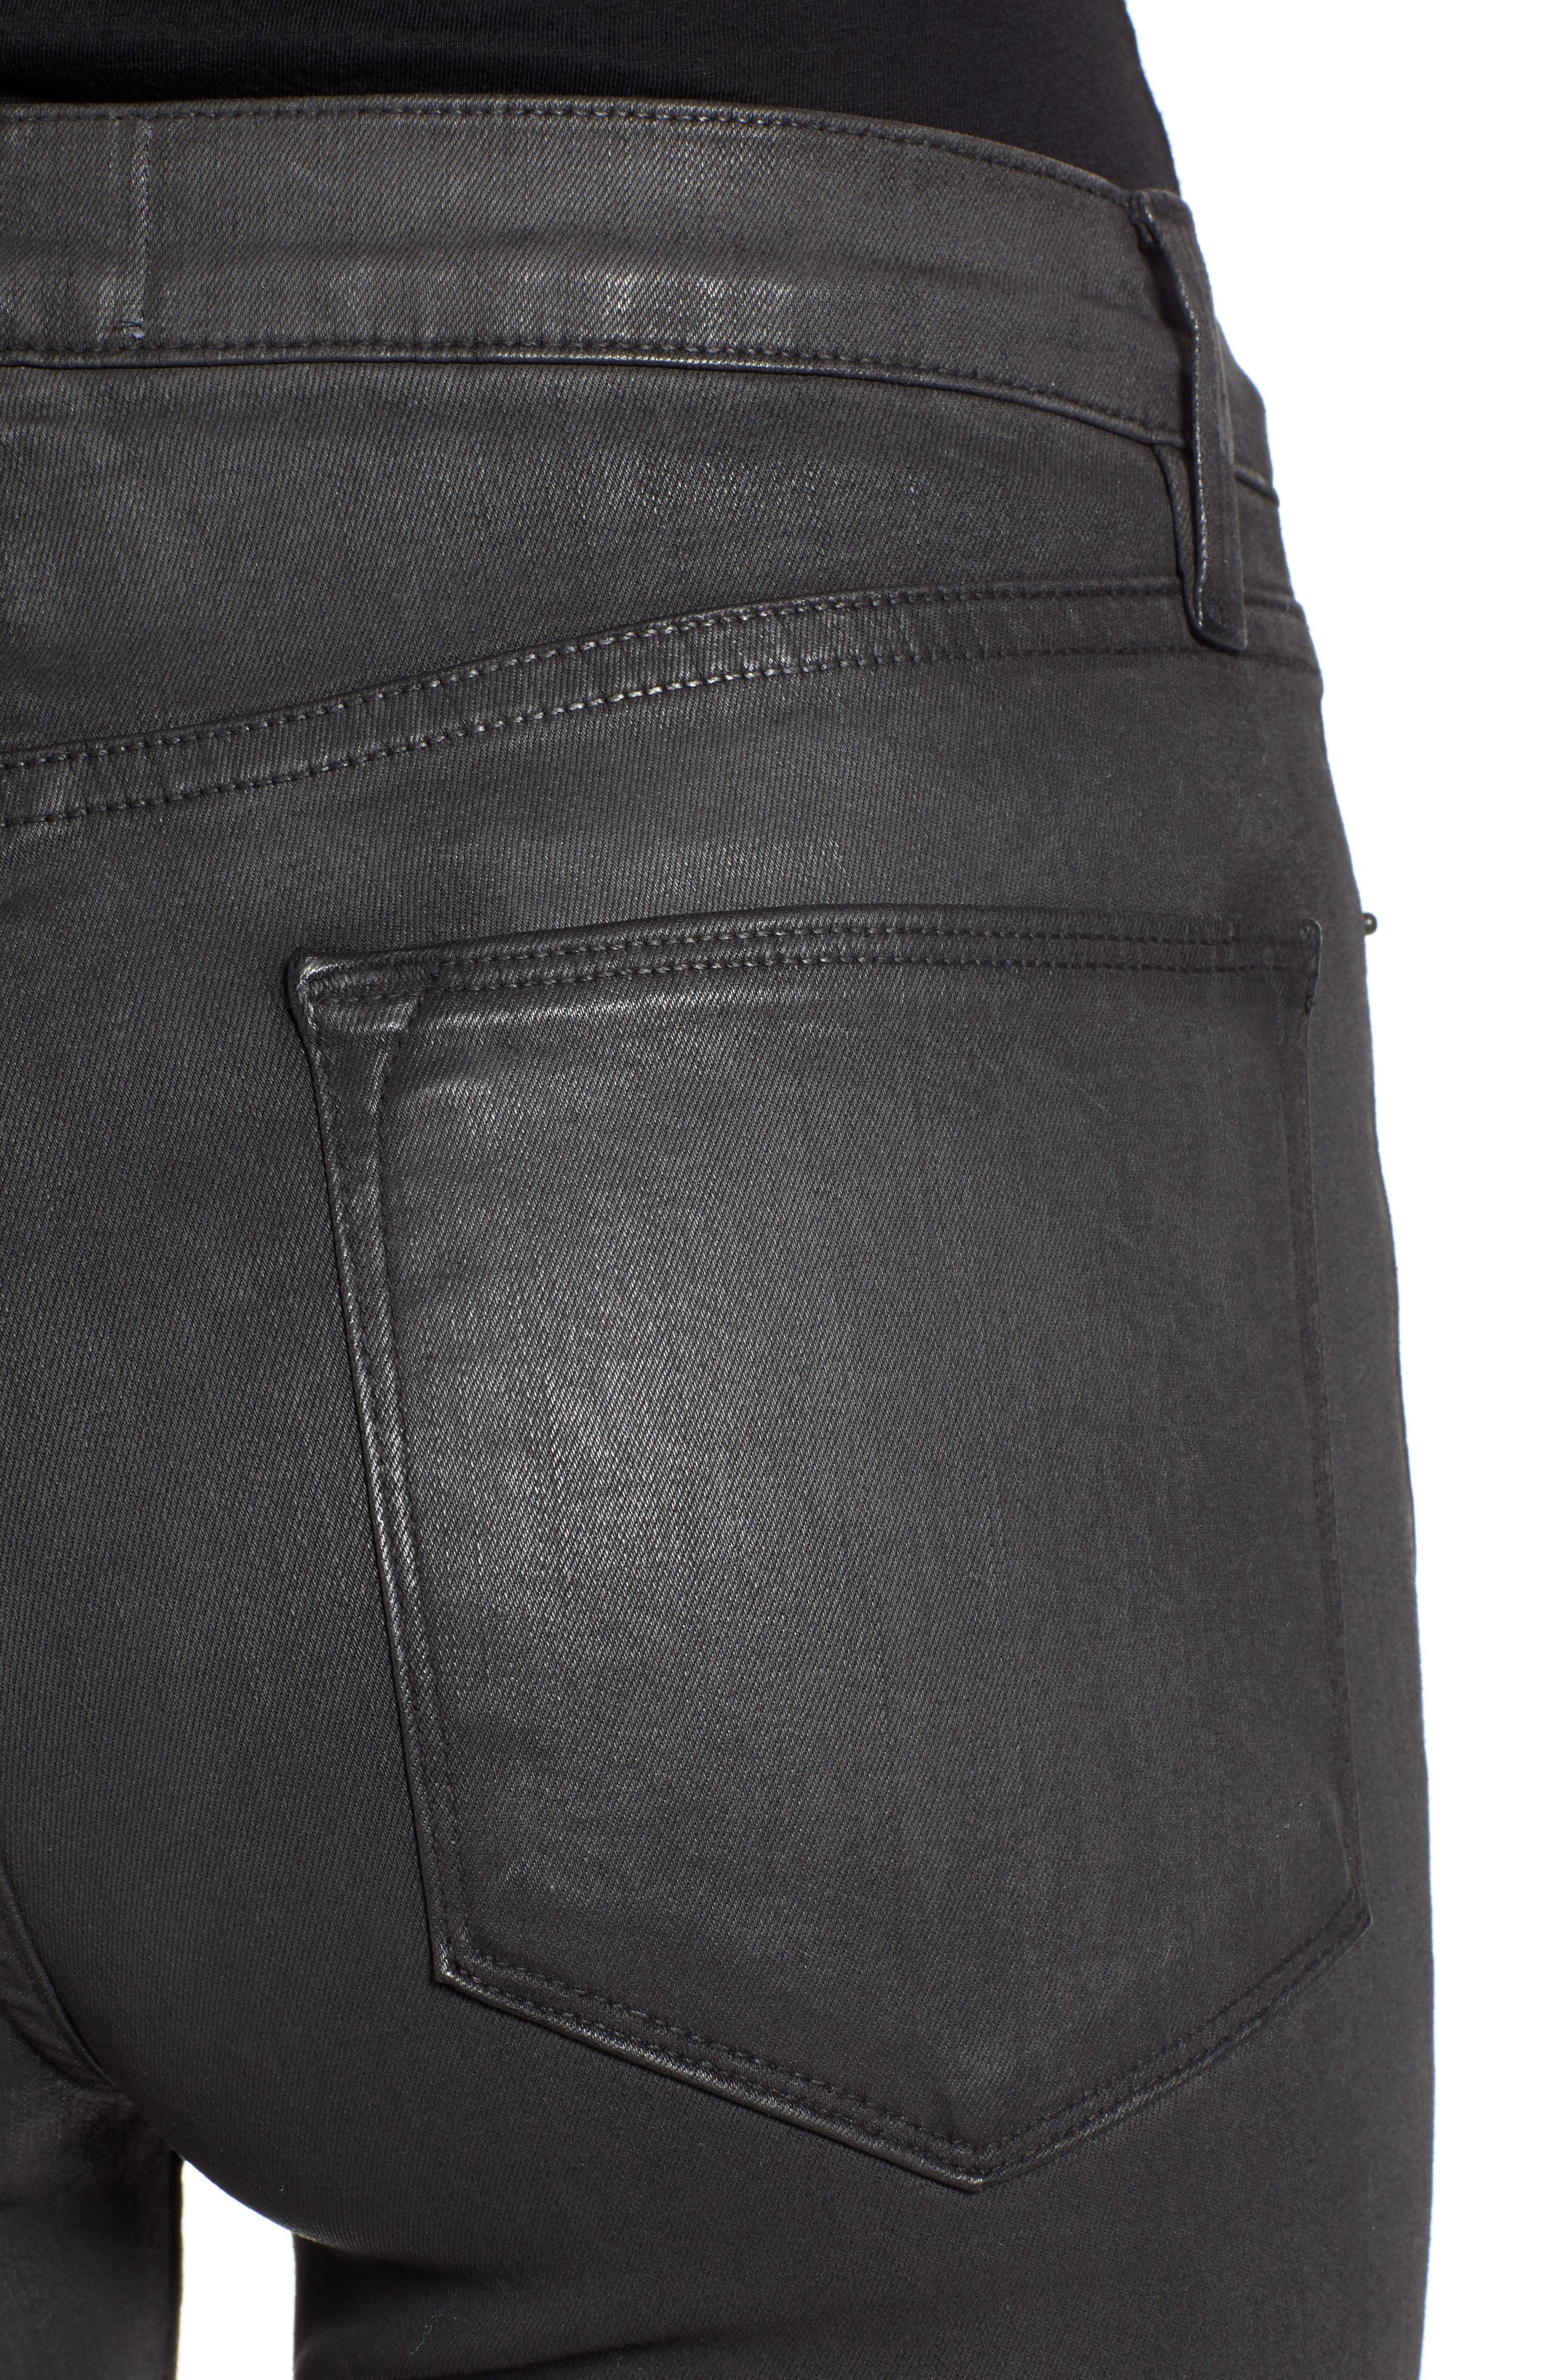 Le High Ankle Skinny Jeans,                             Alternate thumbnail 4, color,                             STONE COATED